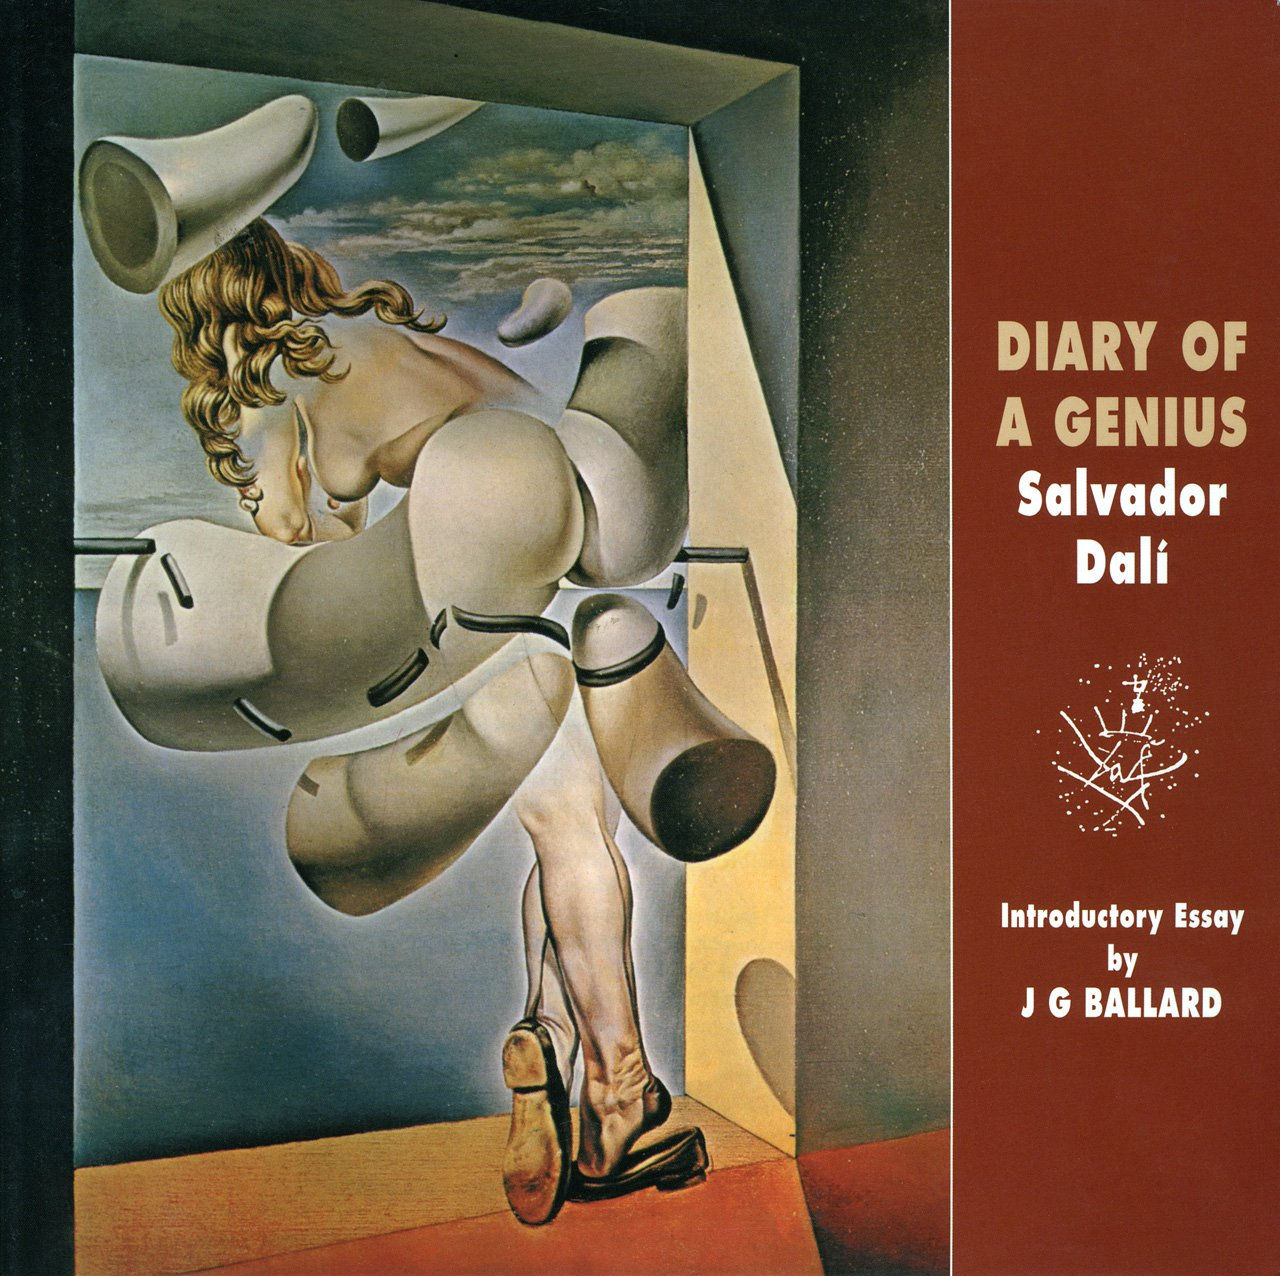 diary of a genius solar art directives salvador dal atilde shy j g diary of a genius solar art directives salvador dalatildeshy j g ballard 9780971457836 com books